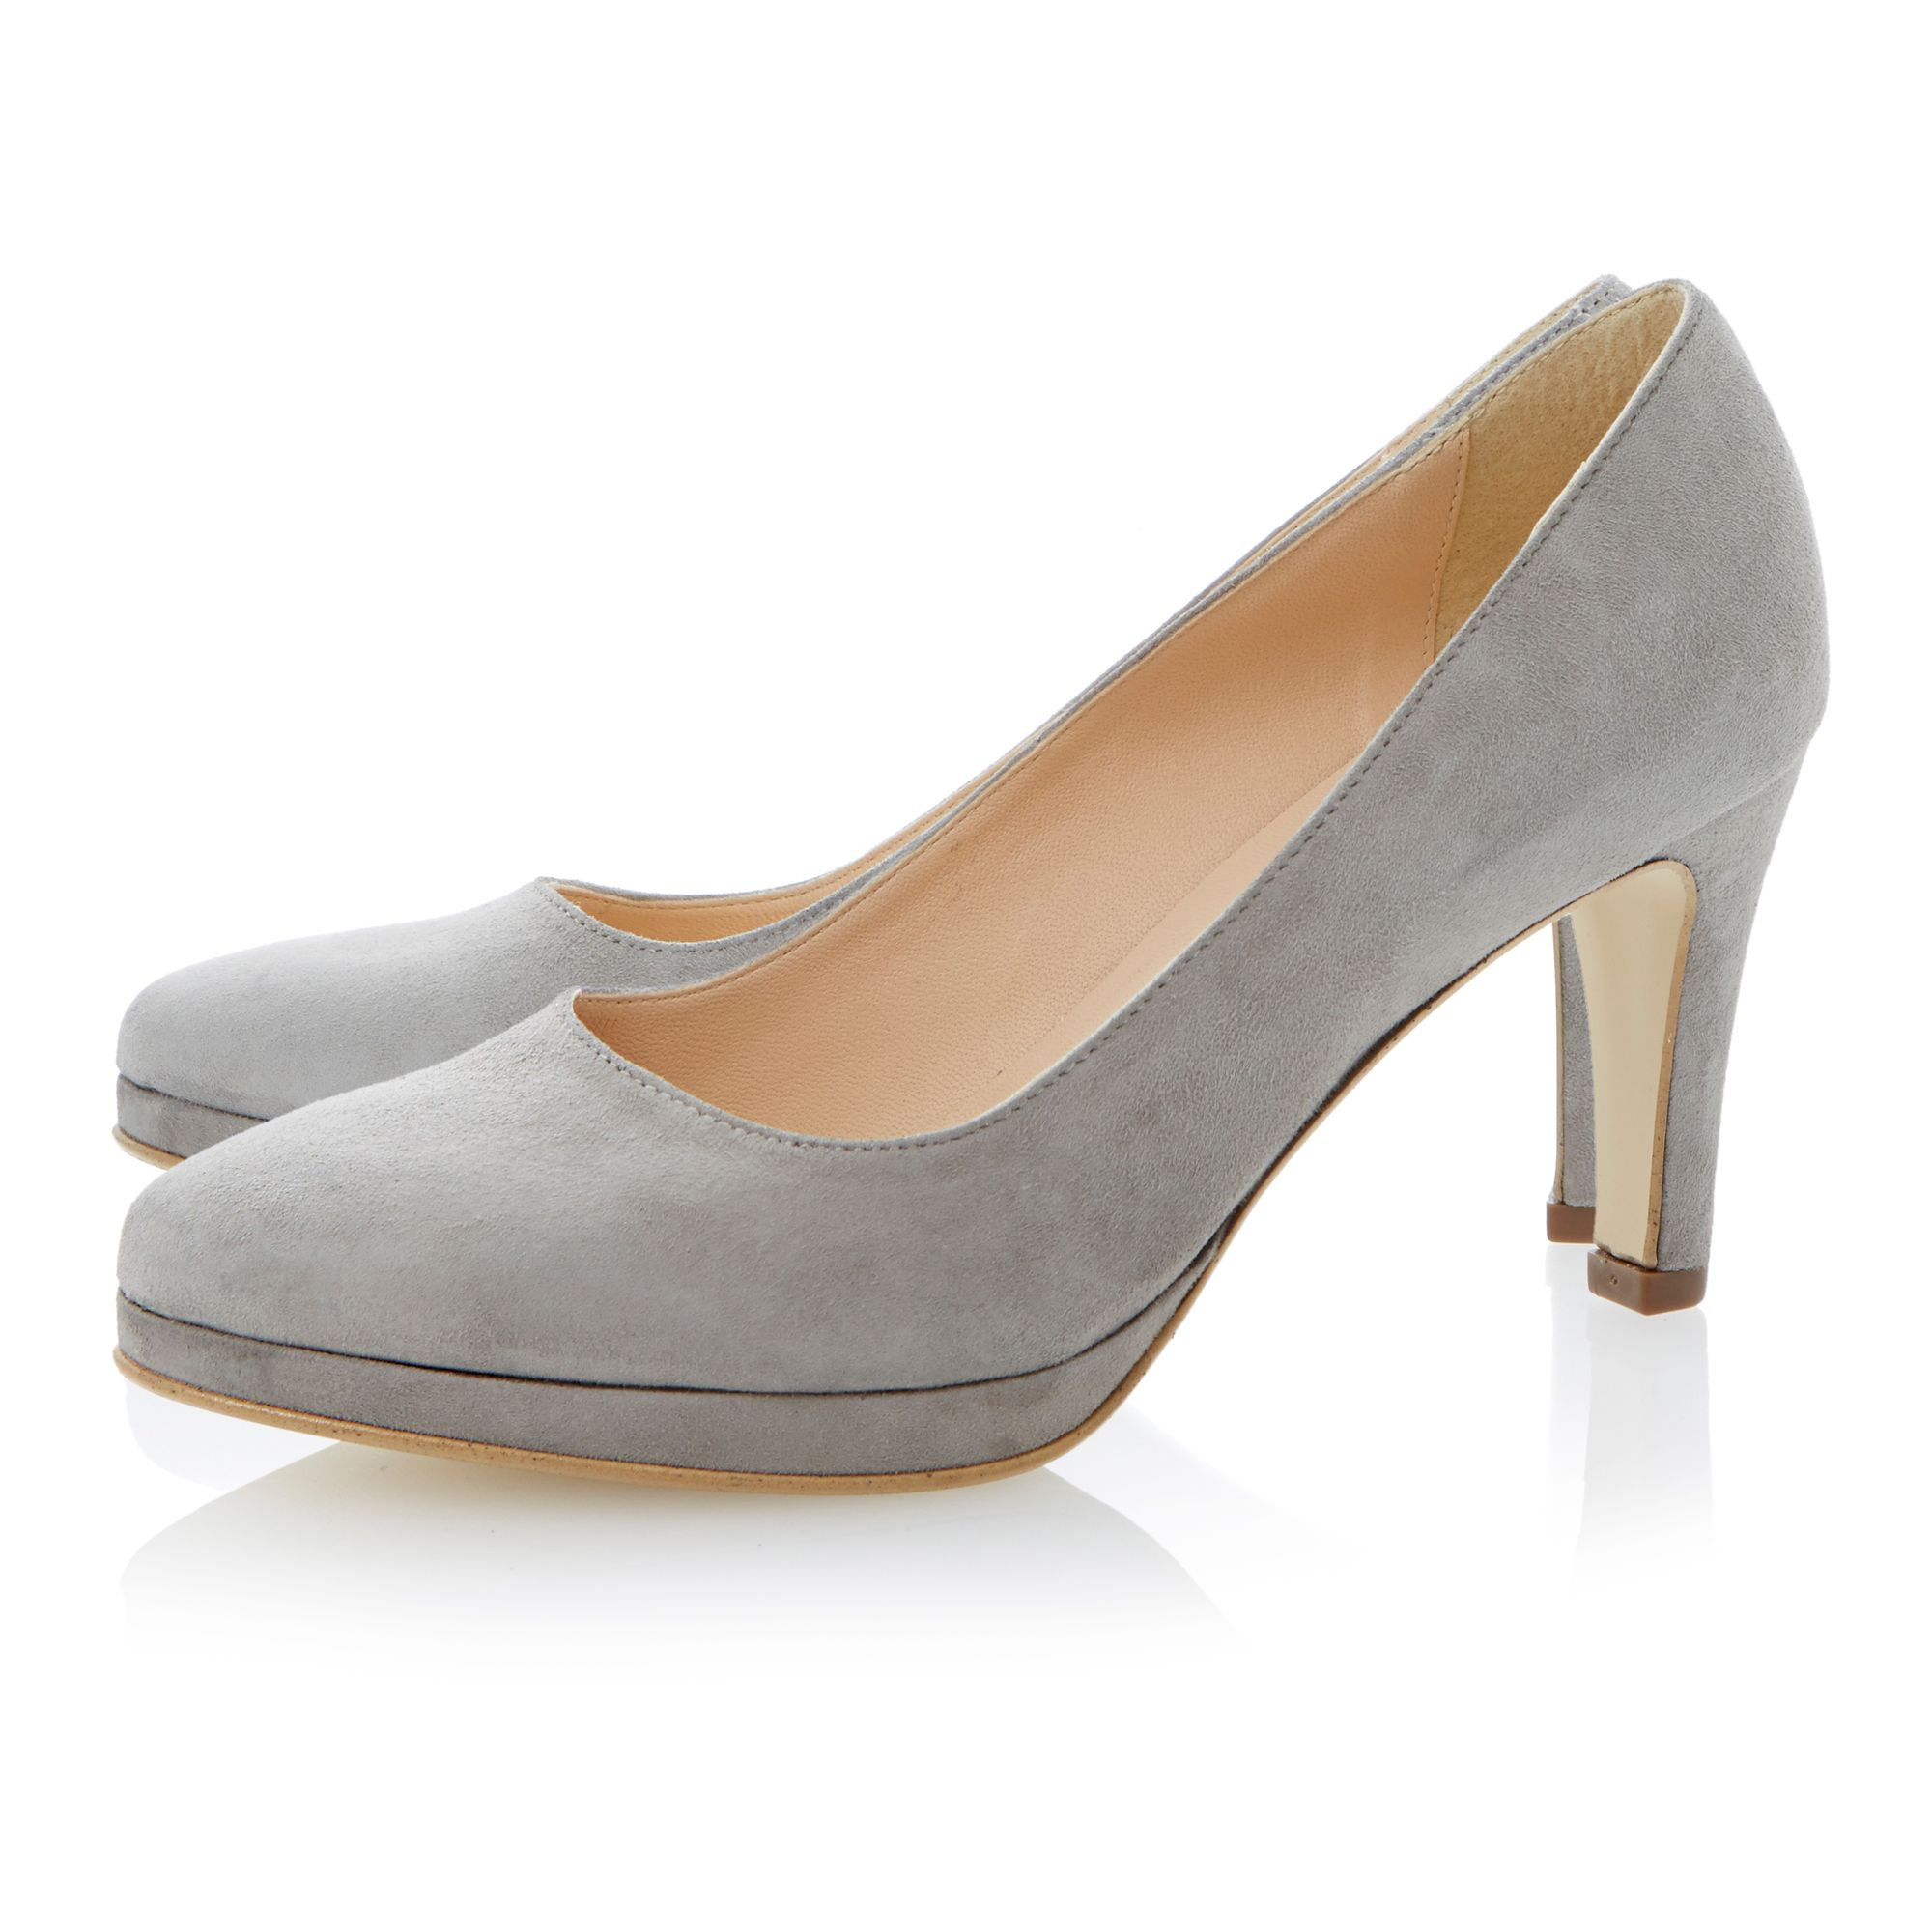 Free shipping BOTH ways on Shoes, from our vast selection of styles. Fast delivery, and 24/7/ real-person service with a smile. grey suede pumps and Shoes 39 items found. Sort By 39 items. View. Sort By. Filter. Your Selections. Shoes Women (38)Boys (1)Category. Heels (38)Sandals (2)Sneakers & Athletic Shoes (1)Brand. Arche (1.